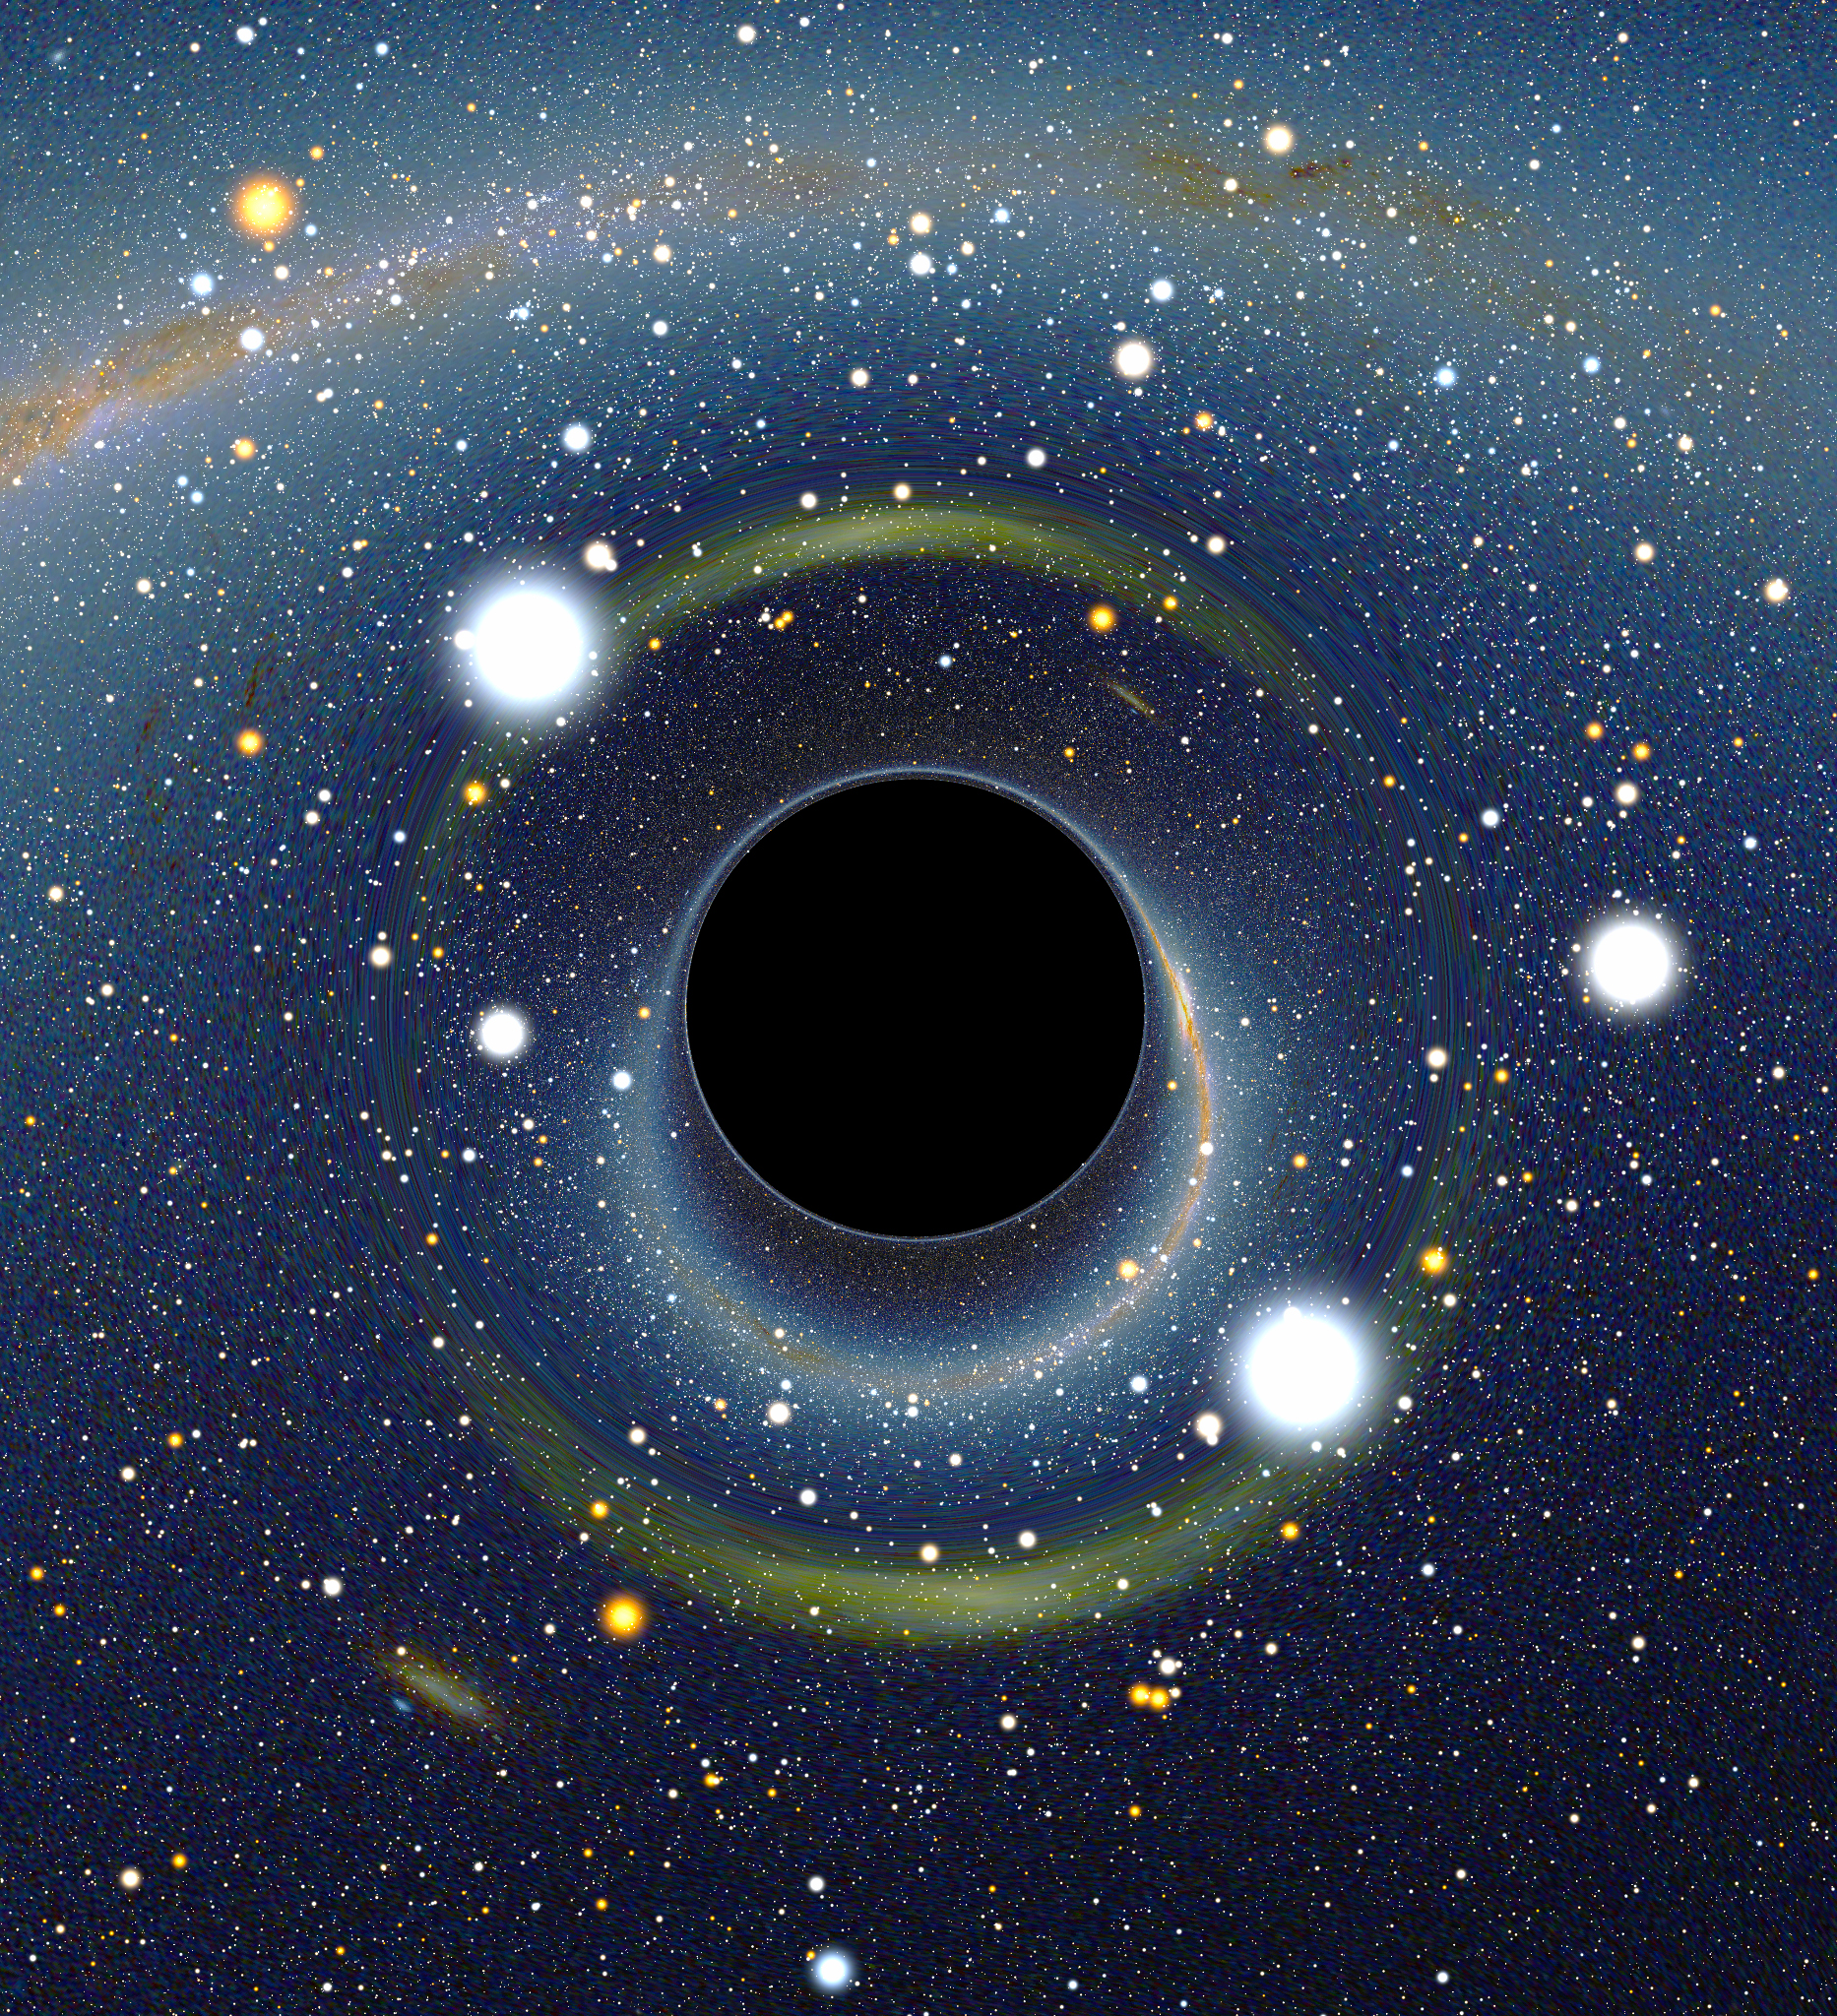 To honor the passing of the Steven Hawking, we are sharing this simulated image of a black hole. To date, there are no actual photographs of a black hole. Among his many groundbreaking discoveries, Hawking theoretically predicted that black holes emit radiation. We are saddened to hear of his loss but we are tremendously grateful for his immense contributions to science and to the knowledge of space.